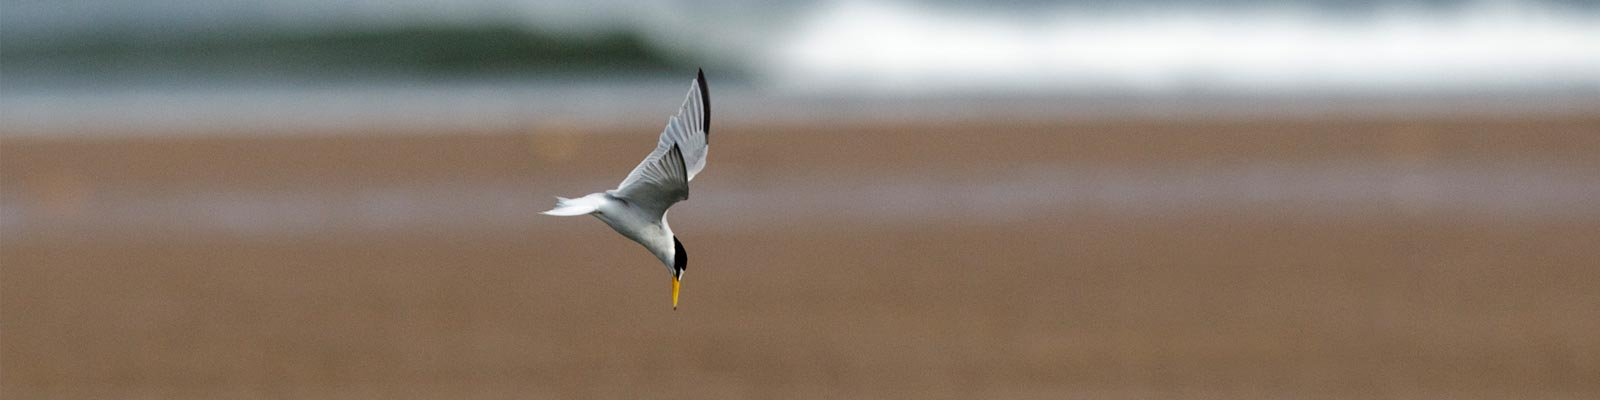 Humber West Little Tern